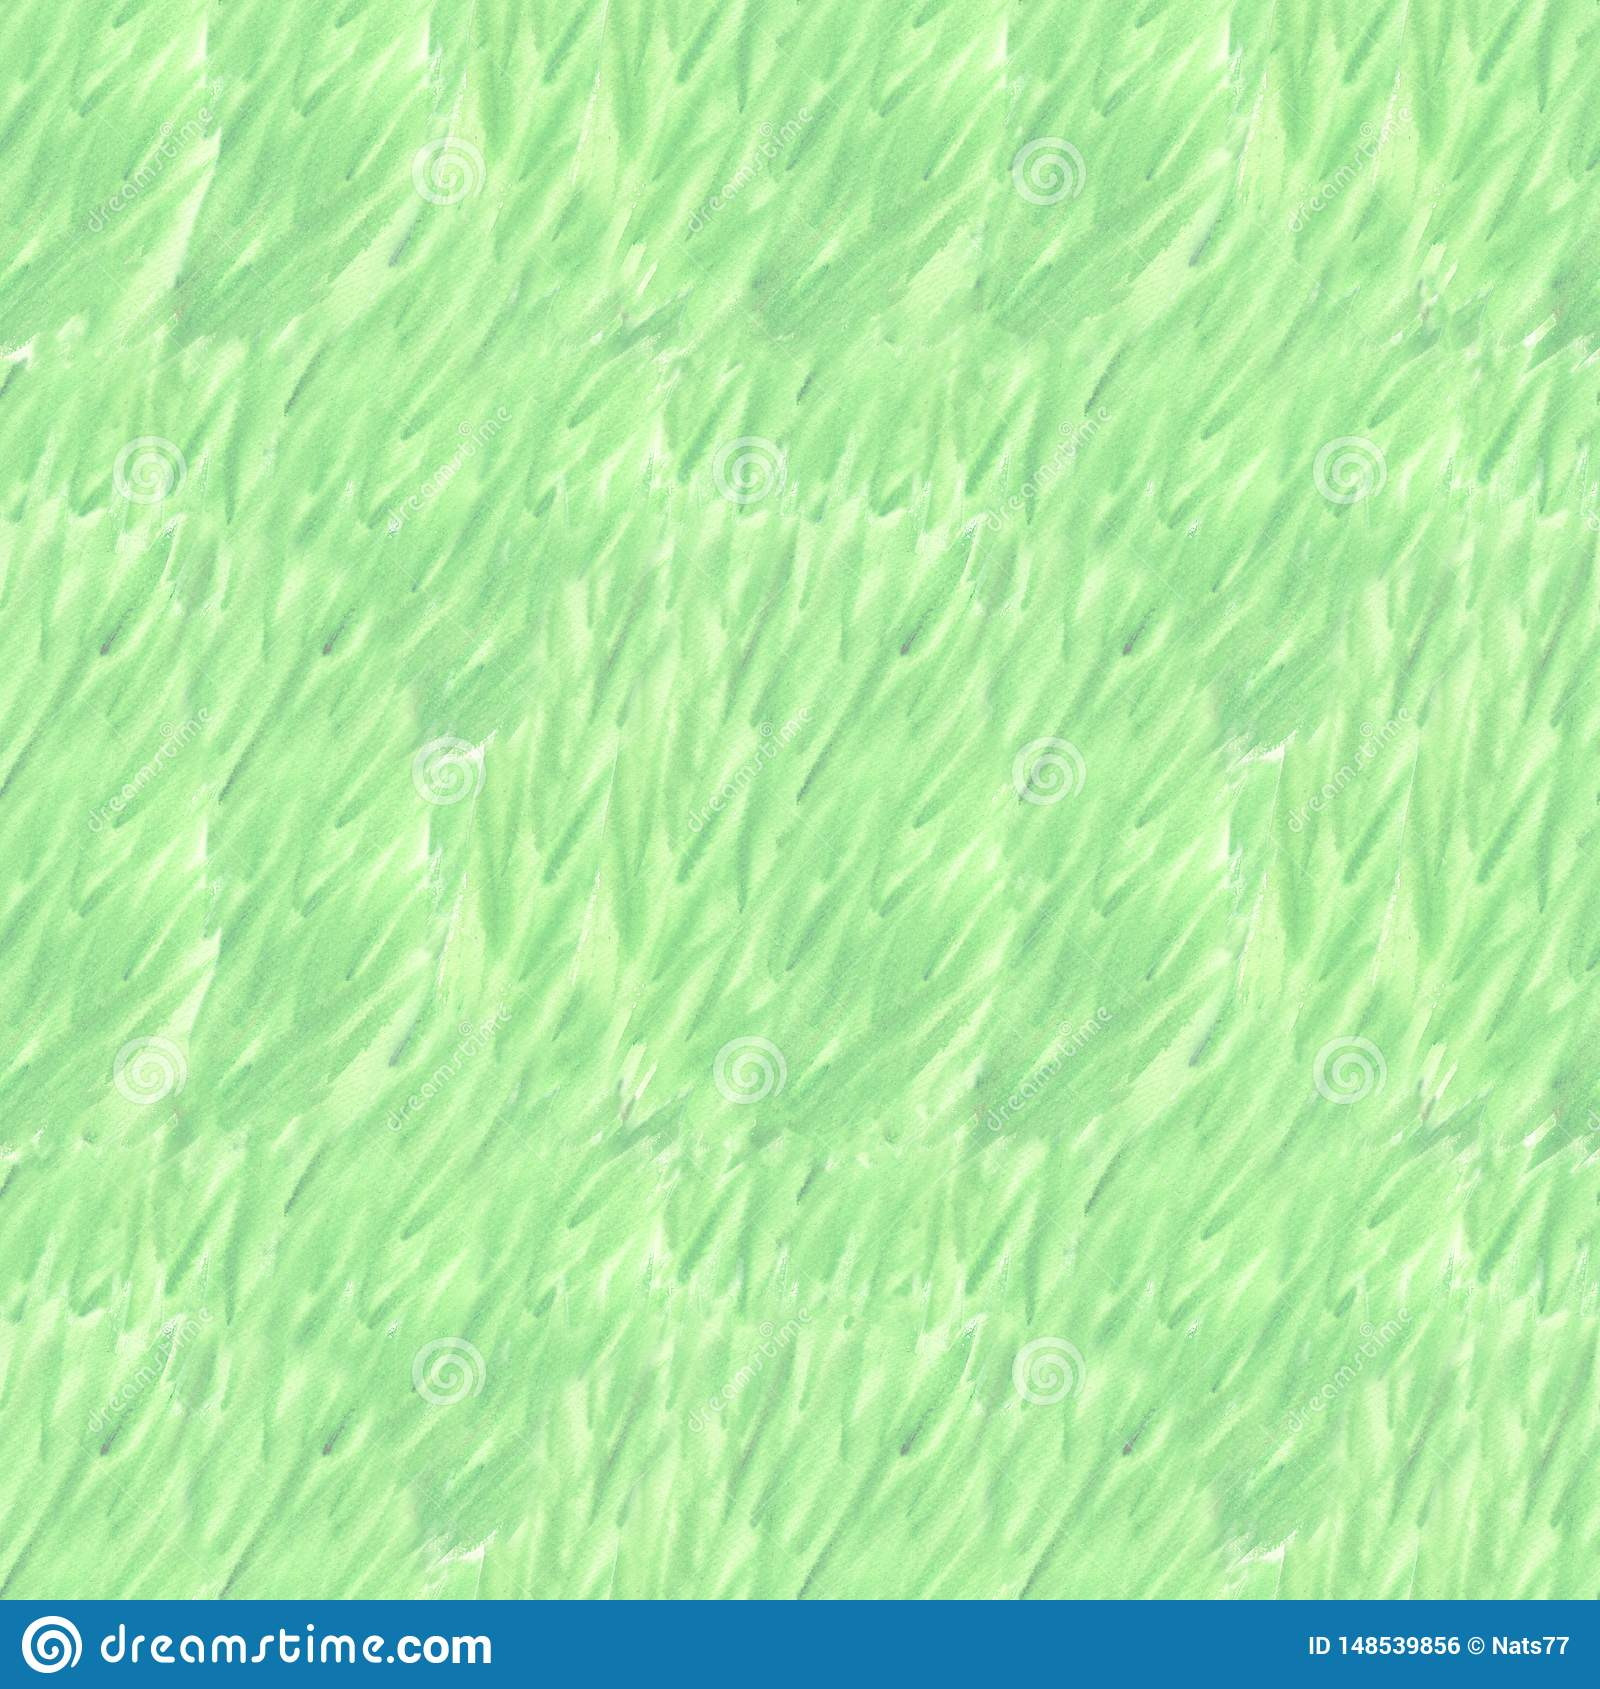 Wet watercolor green seamless pattern with color blurred stripes. Repeat straight stripes texture background. Hand